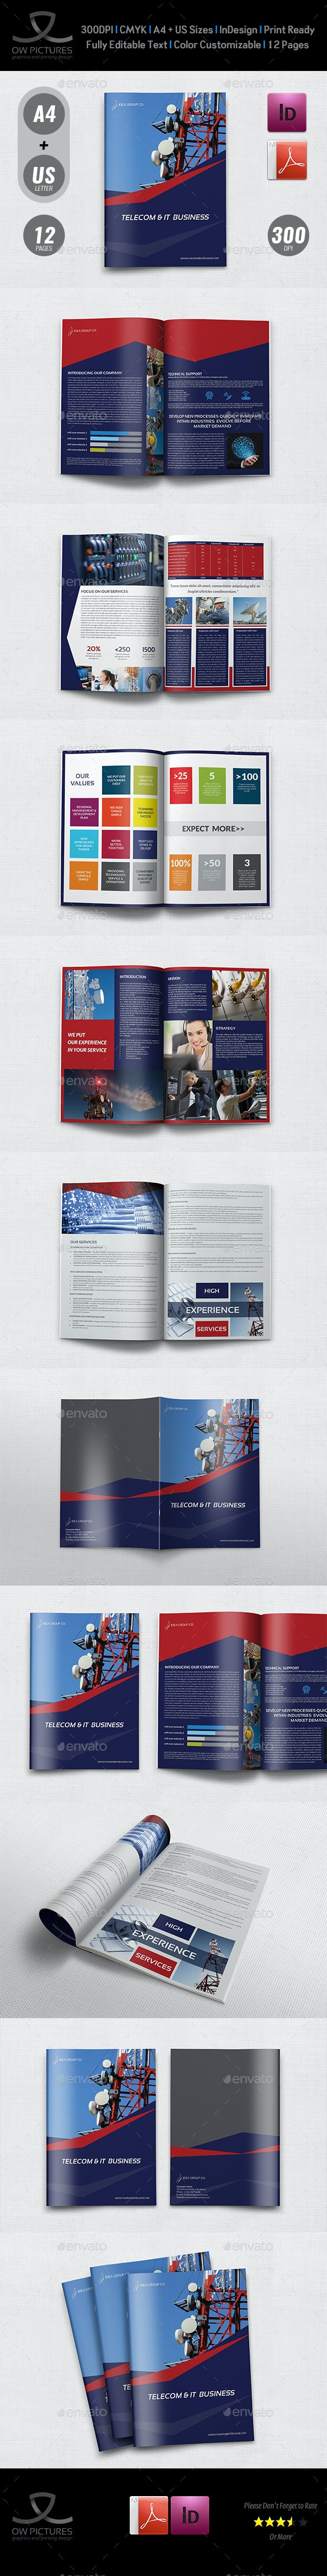 Telecom Services Brochure Template - 12 Pages - Corporate Brochures